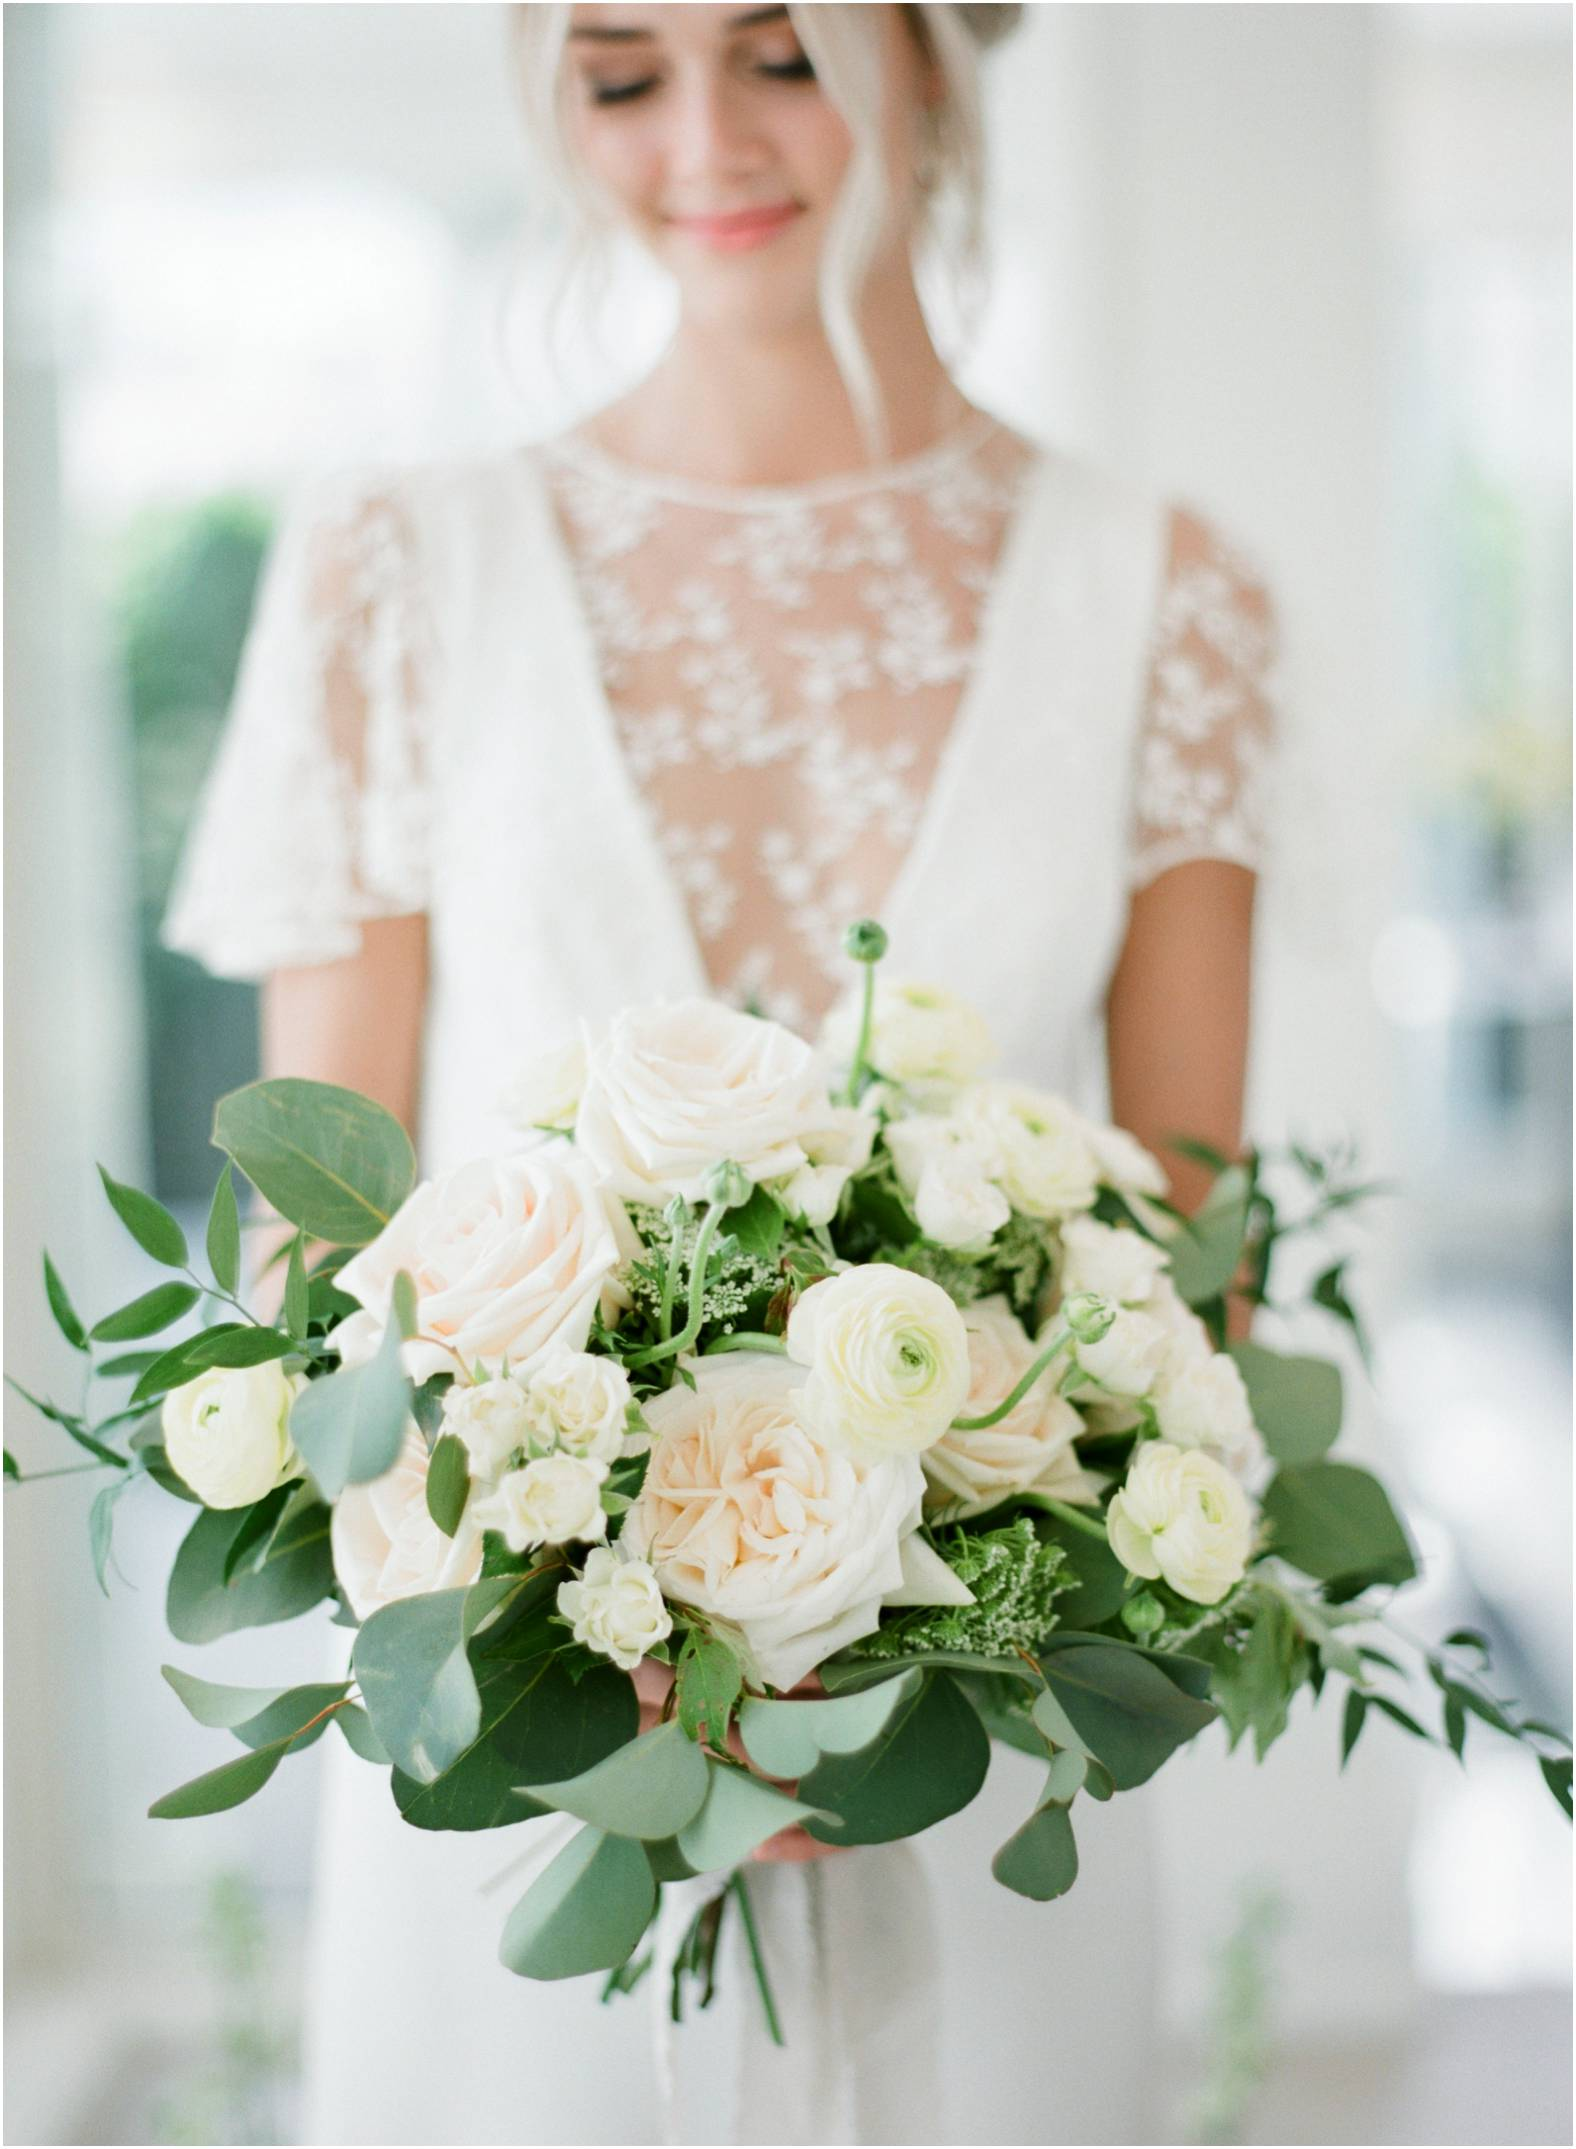 Bride wearing lace dress from The Modern Bride with bright coral lipstick and low classic updo holds a large loose bouquet of neutral blooms and greenery during her outdoor garden wedding at The Gate House in Niagara on the Lake